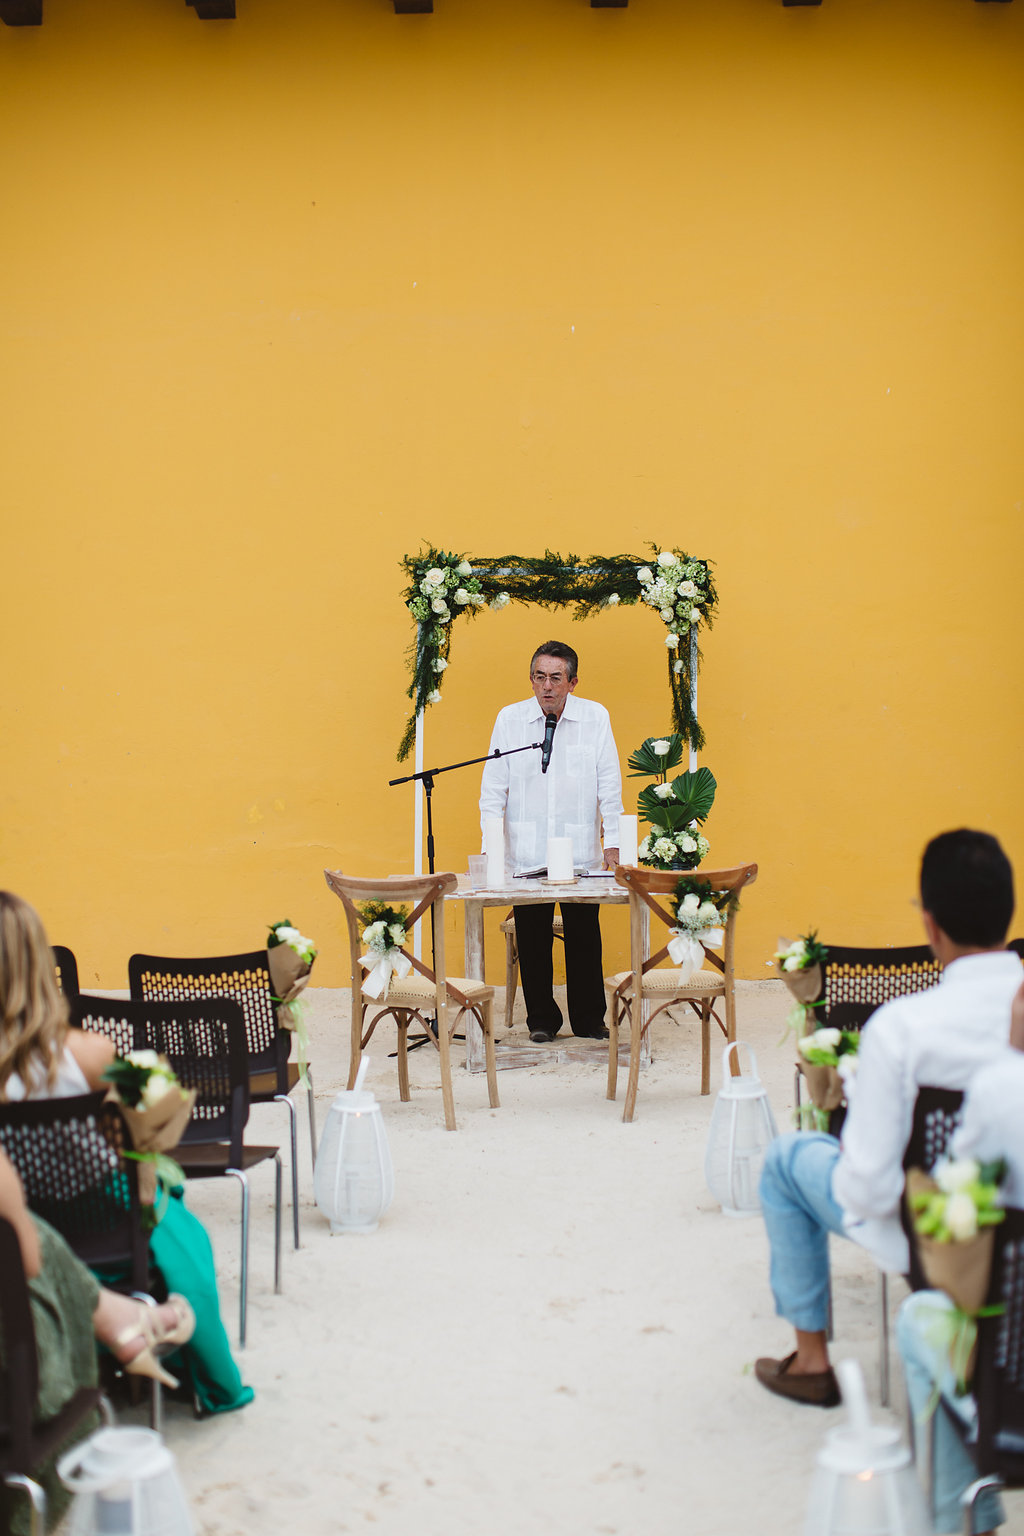 julieth-bravo-wedding-planner-papeles-matrimonio-civil-blog-bogota-destination-wedding.jpg